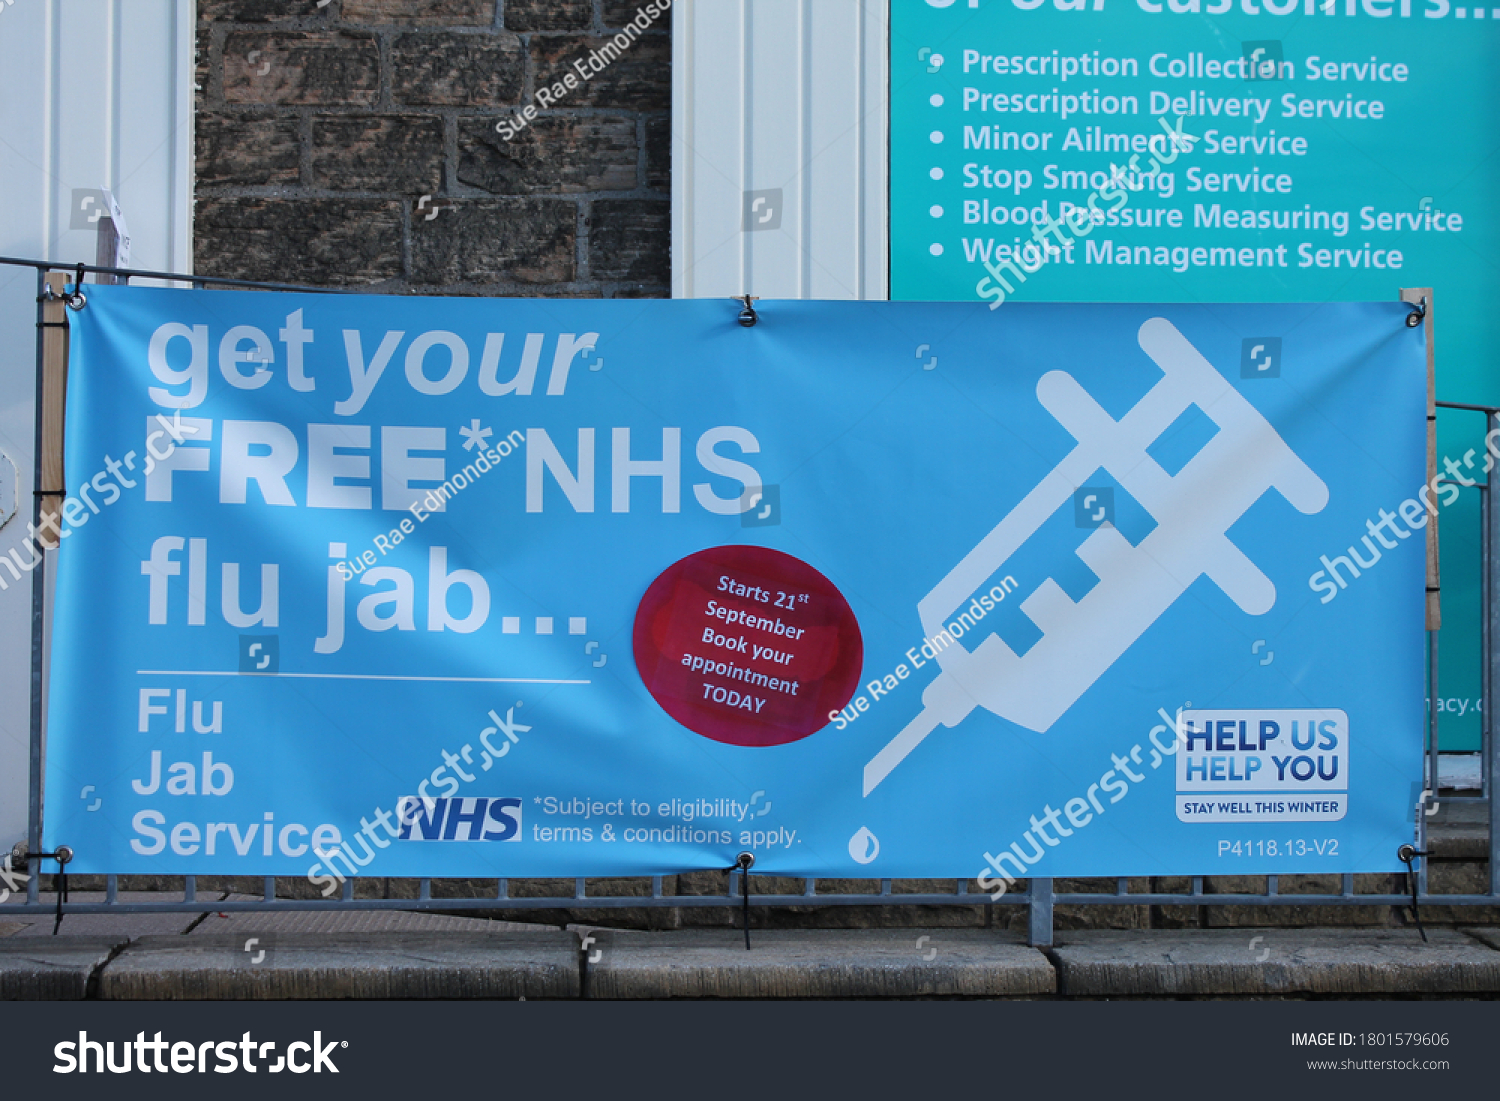 Upholland, Lancashire, UK, 24/08/2020: Flu jab sign outside pharmacy